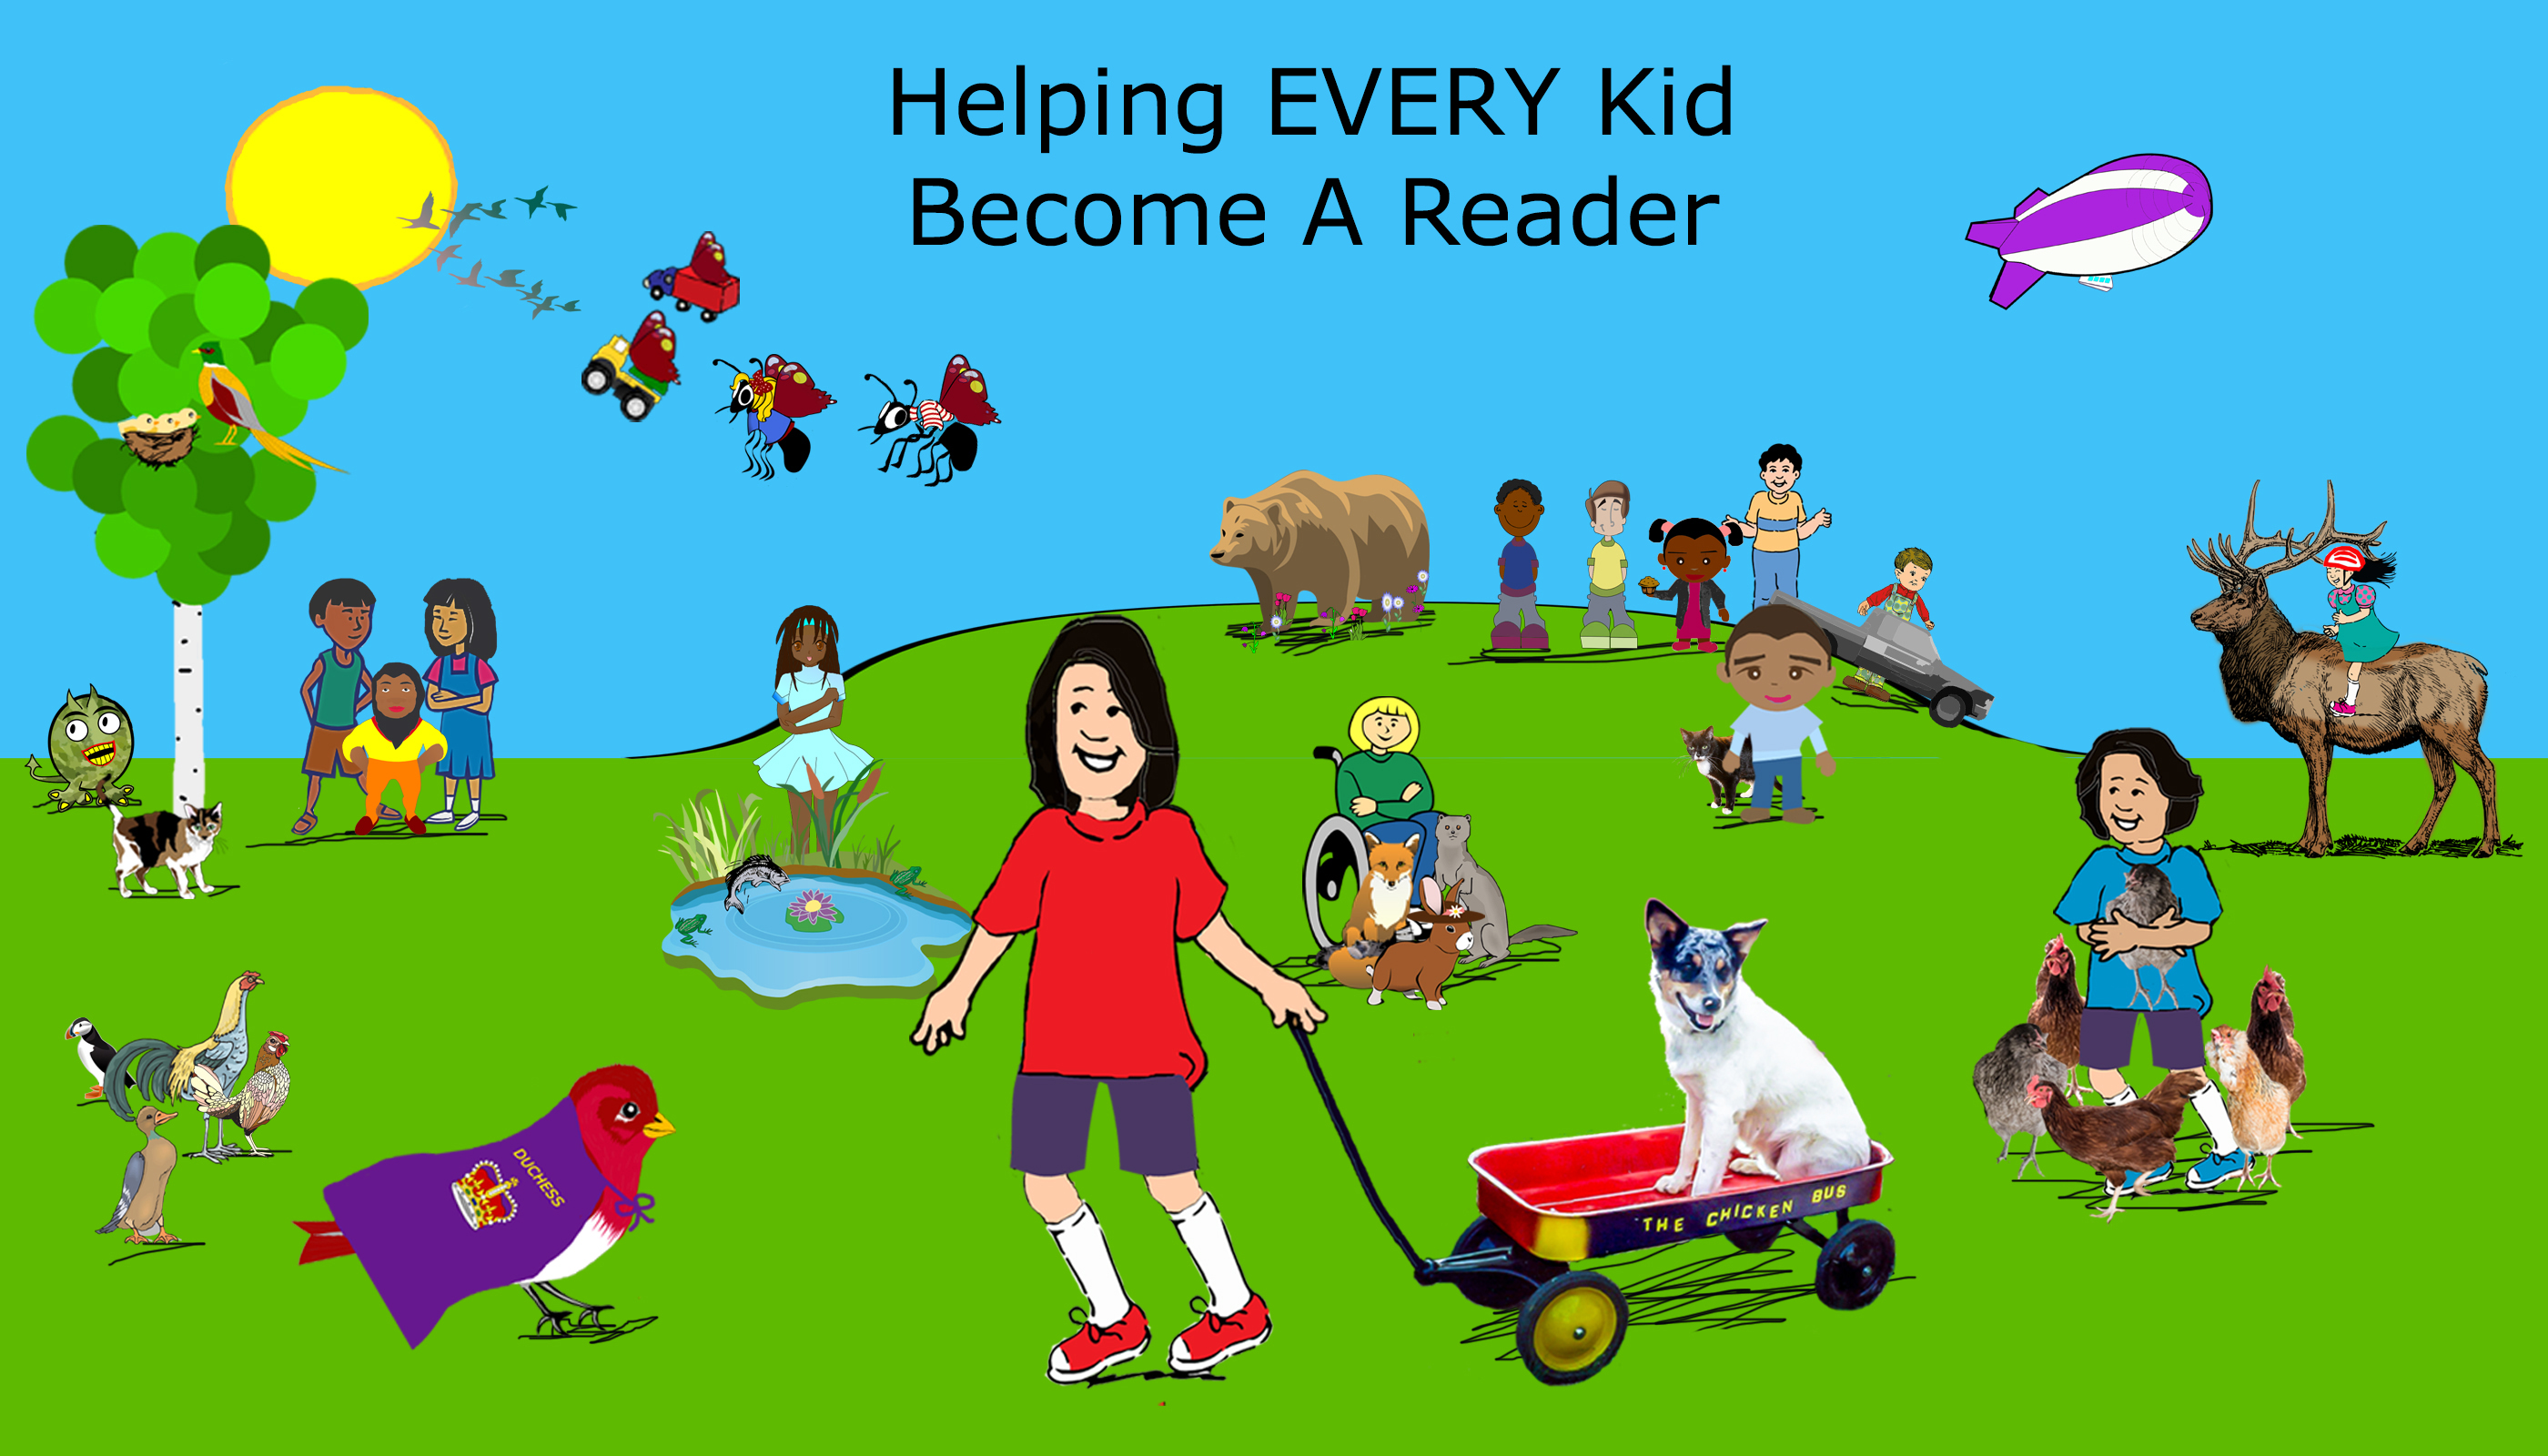 Systematic Decodable Phonics Books For Learning To Read